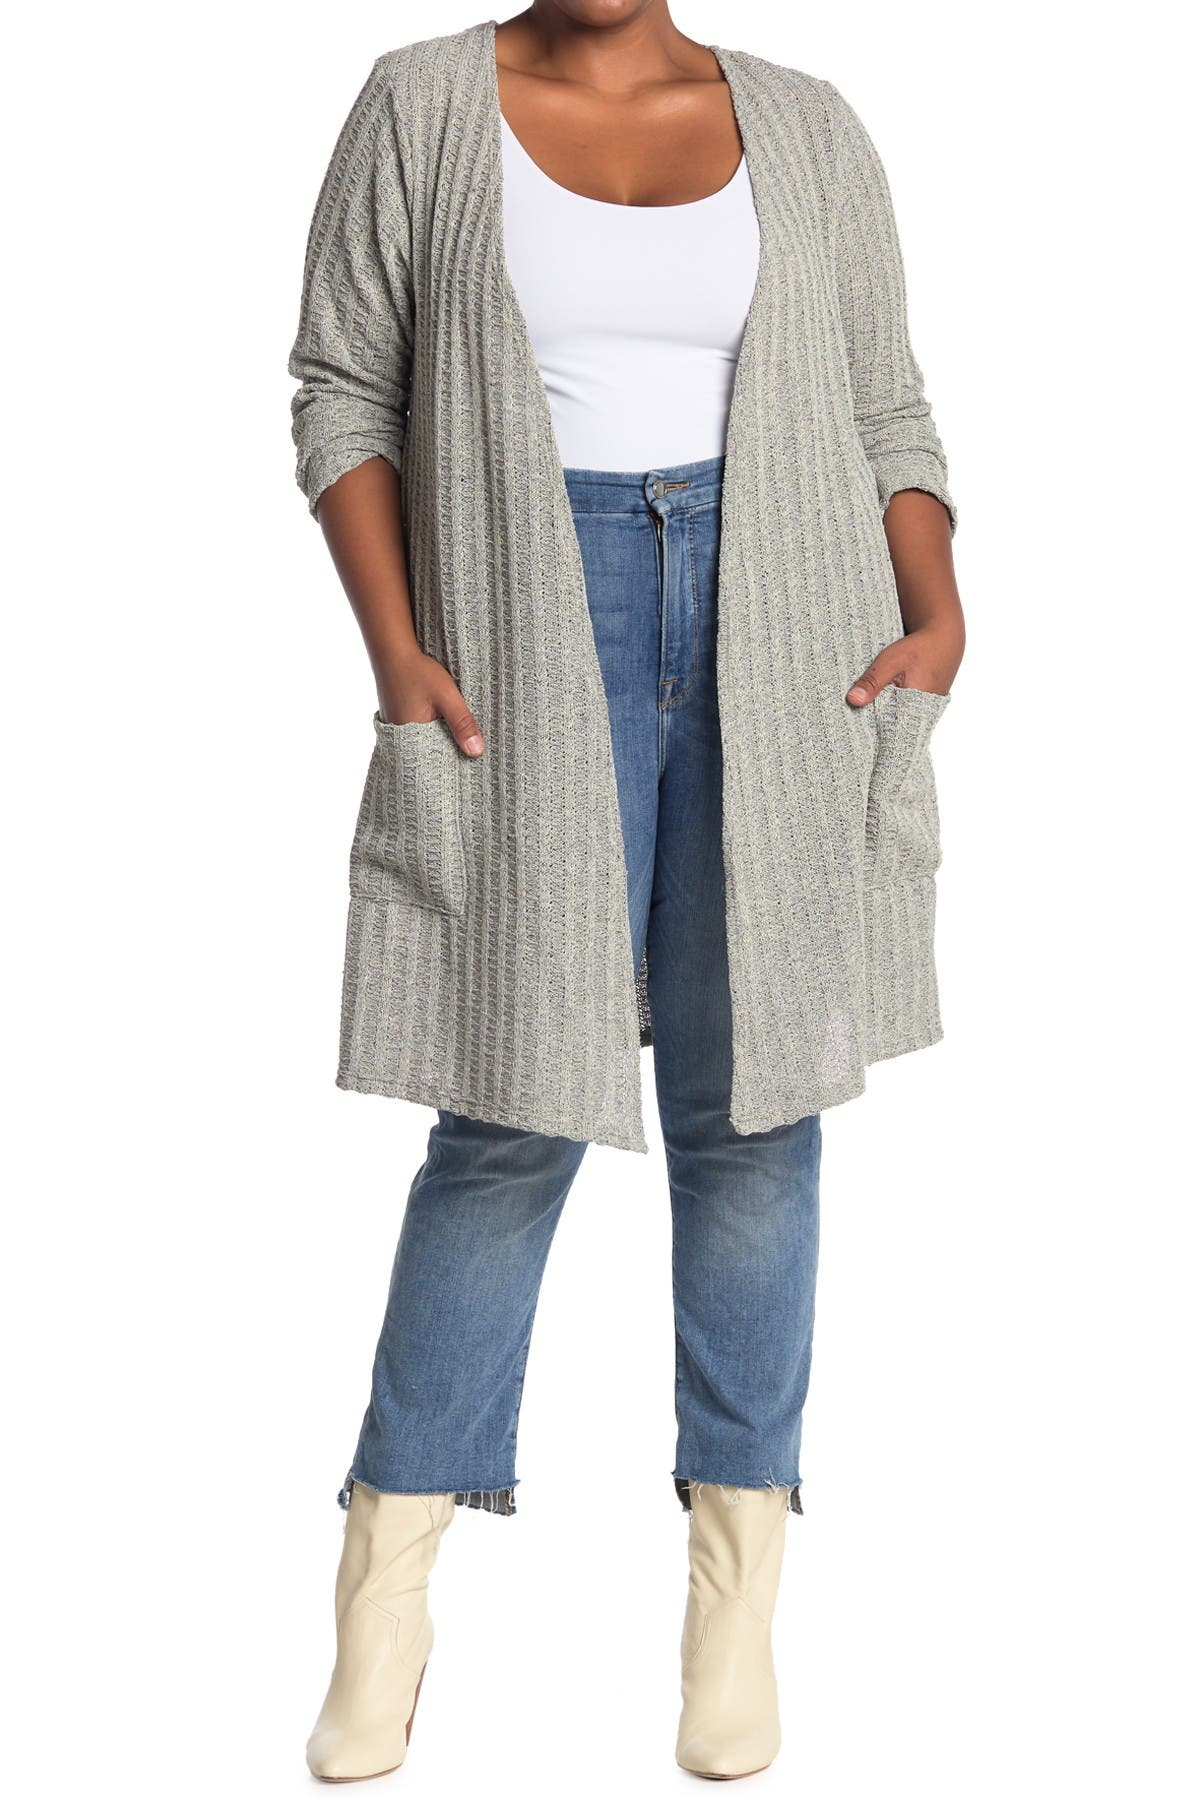 Image of Forgotten Grace Boucle Ribbed Pocket Cardigan